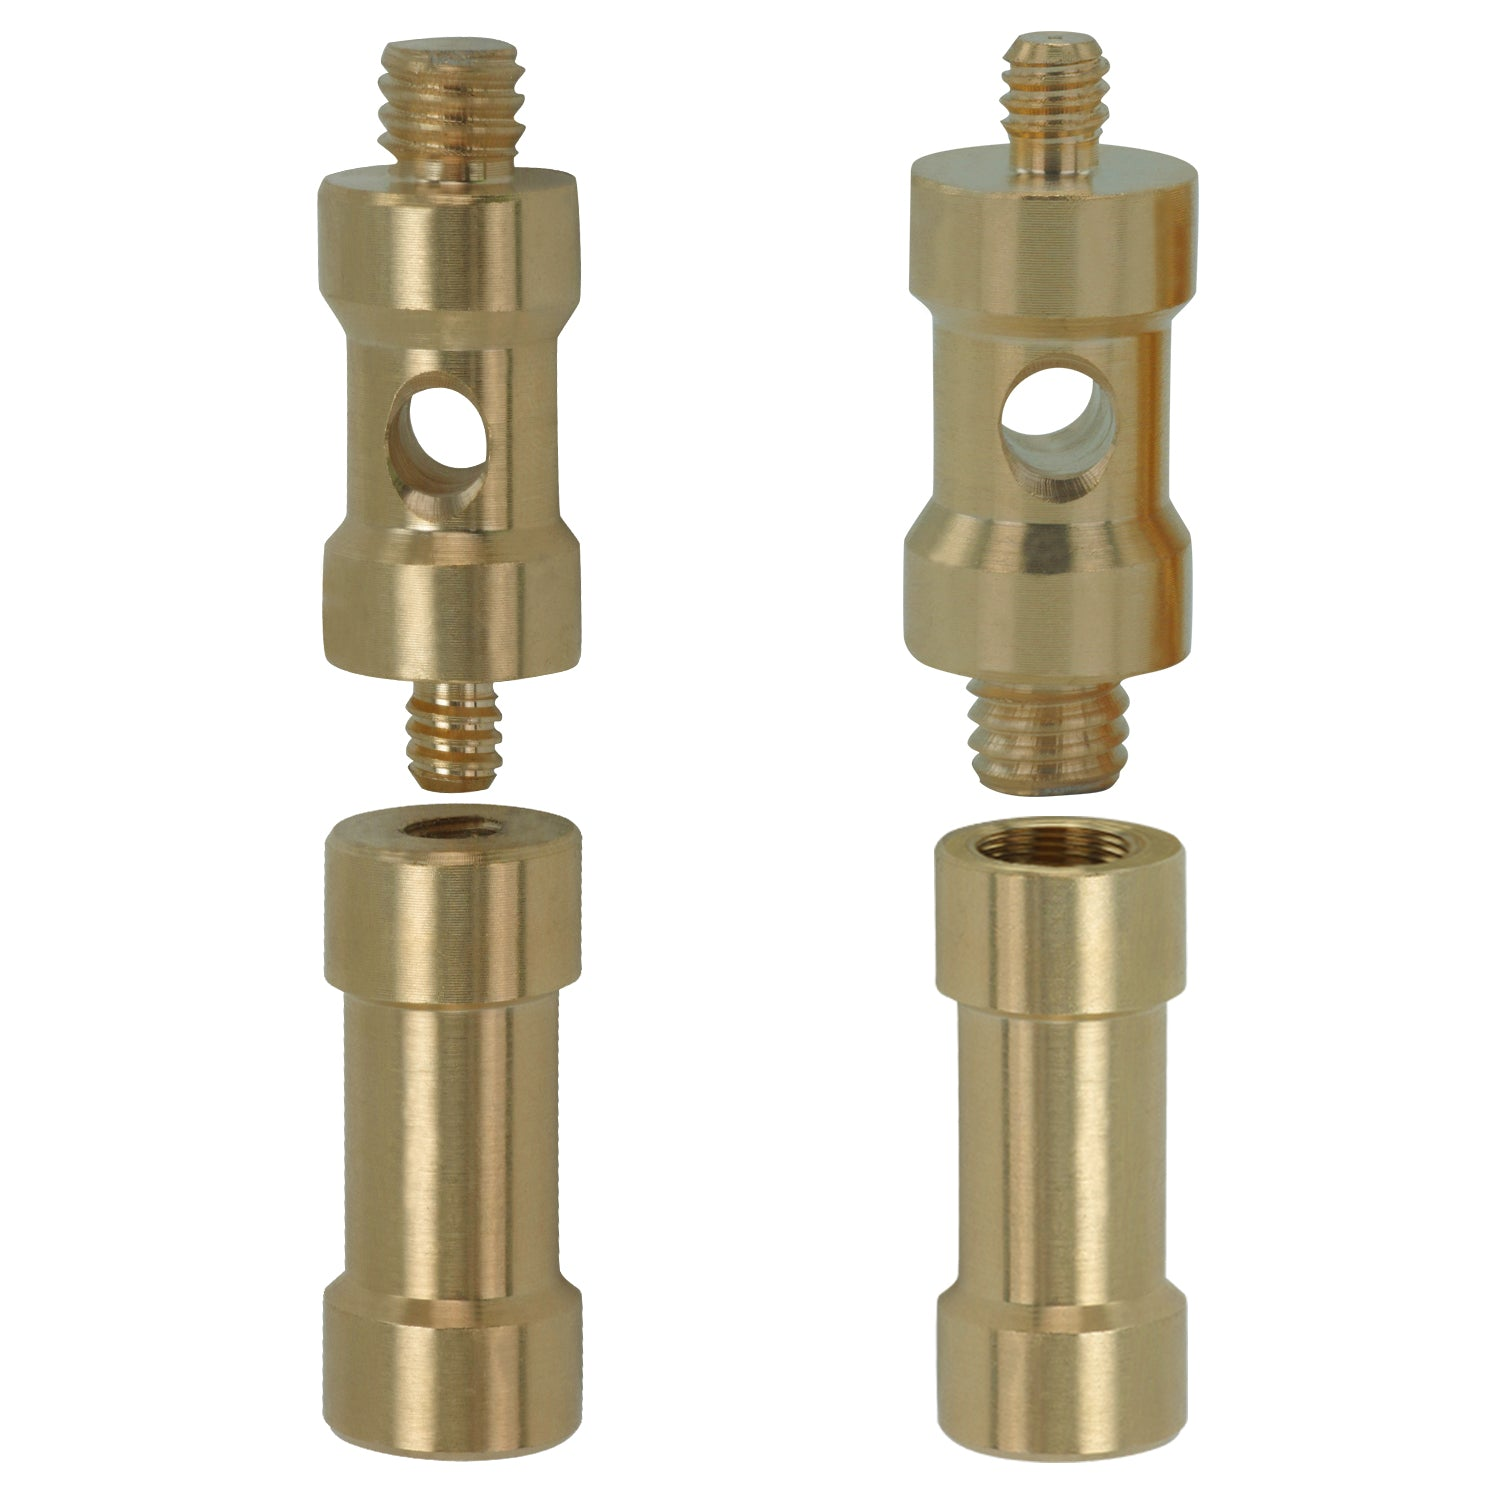 "Loadstone Studio Two Small Male to Male 1/4"" to 3/8"" Threaded Adapter  with Two  Small Female to Female 1/4"" to 3/8"" Adaptor Extension for Video Lights and Stands with 1/4"" and 3/8"" Threads, WMLS4595"